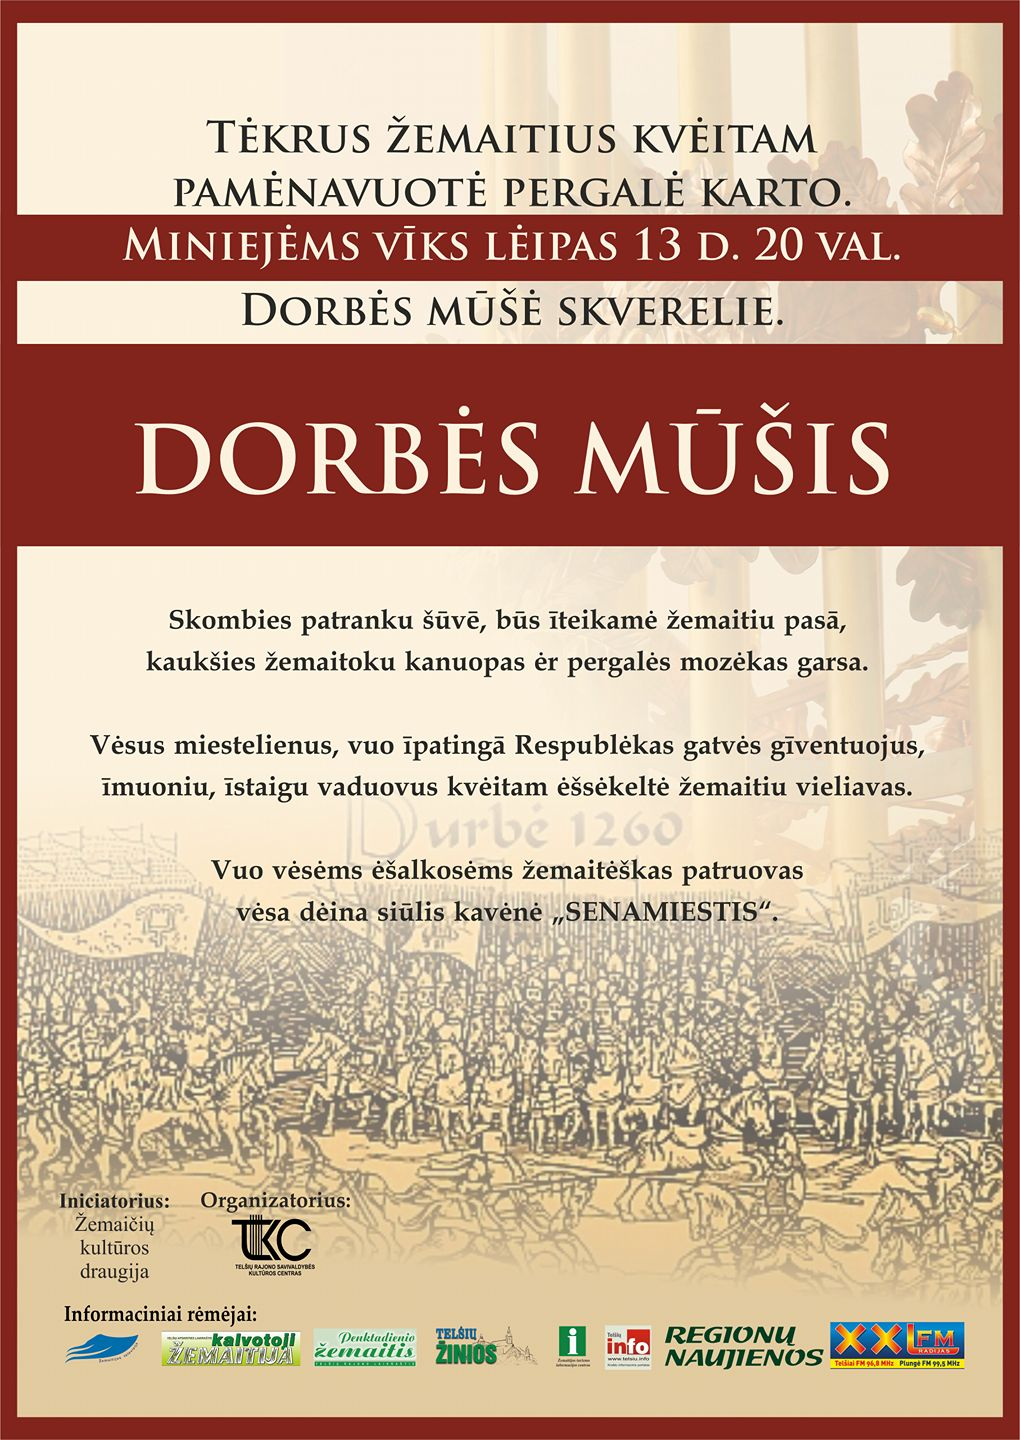 Dorbes musis